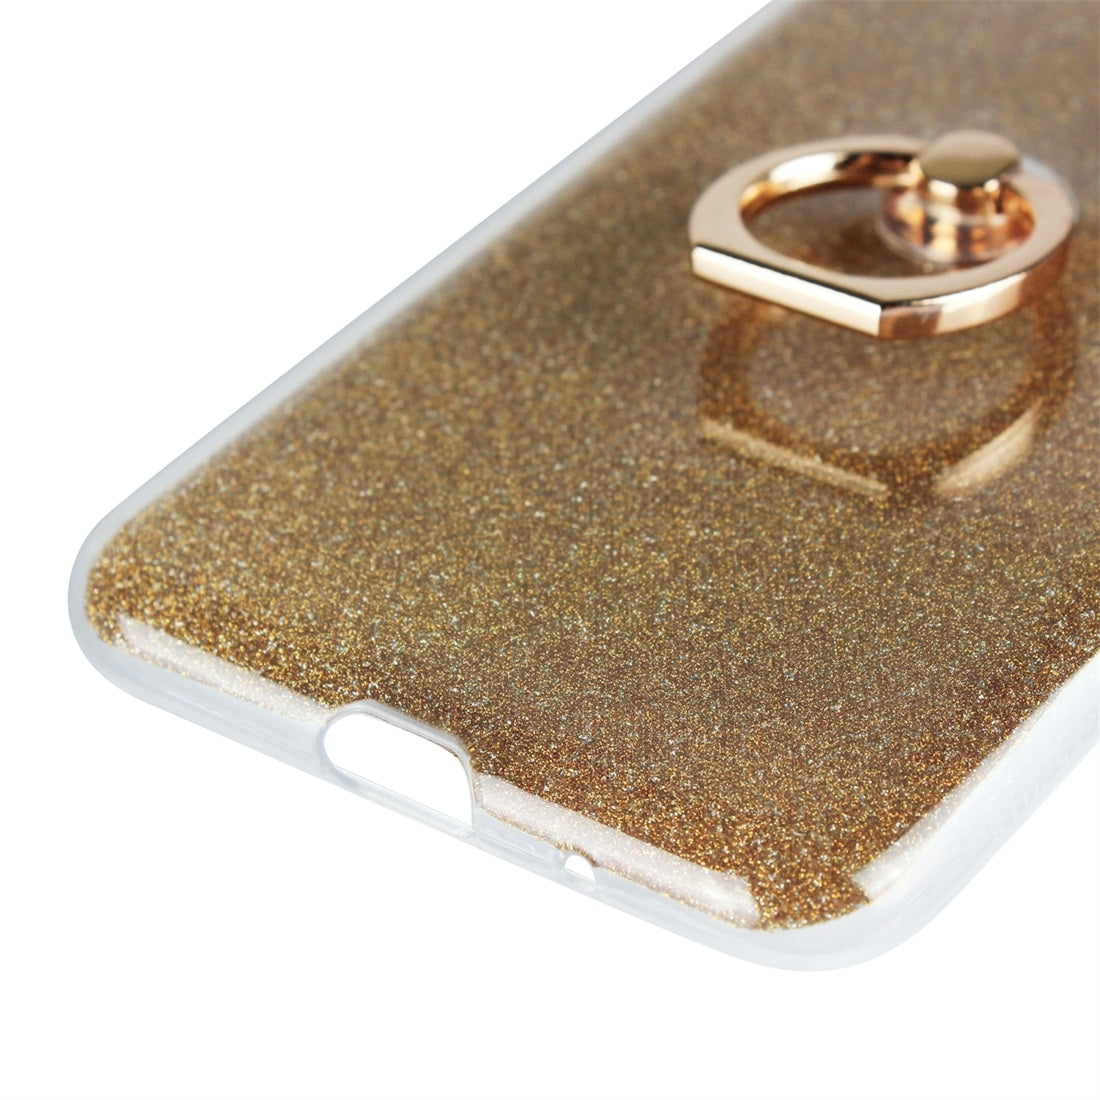 For Huawei Y5 (2018) Glittery Powder Shockproof TPU Protective Case with Ring Holder(Gold)